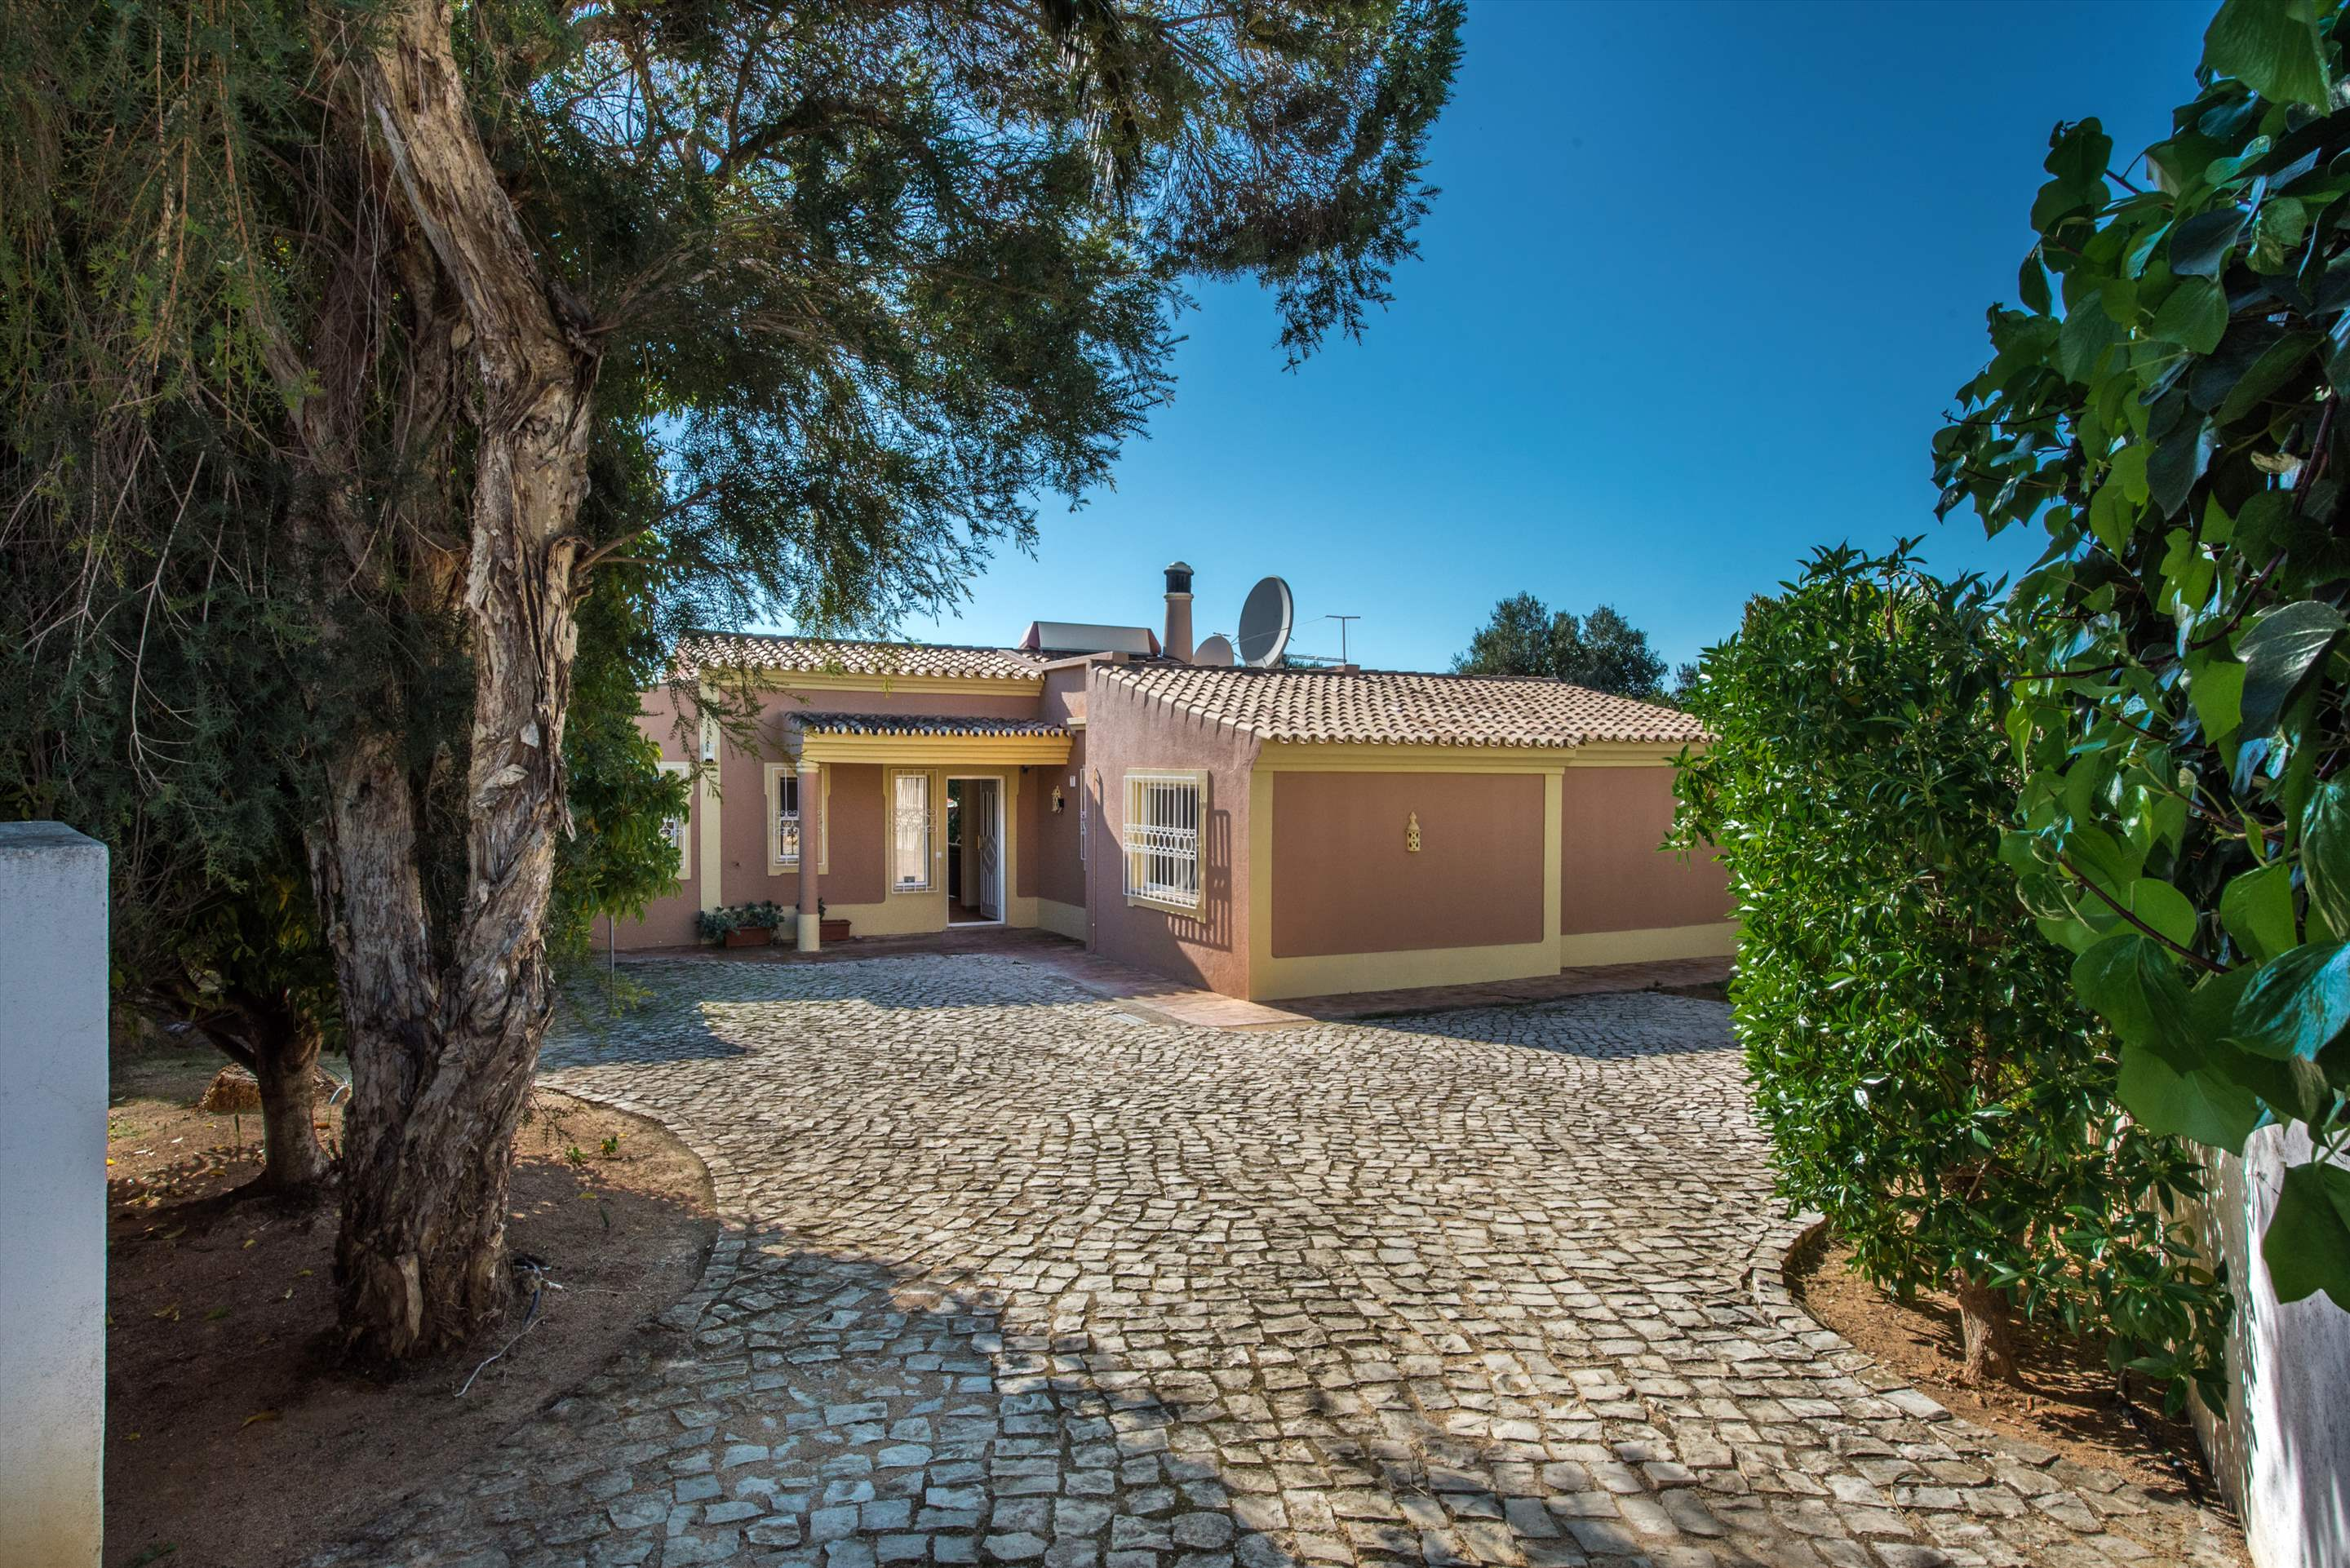 Villa Moinho, 3 bedroom villa in Gale, Vale da Parra and Guia, Algarve Photo #8